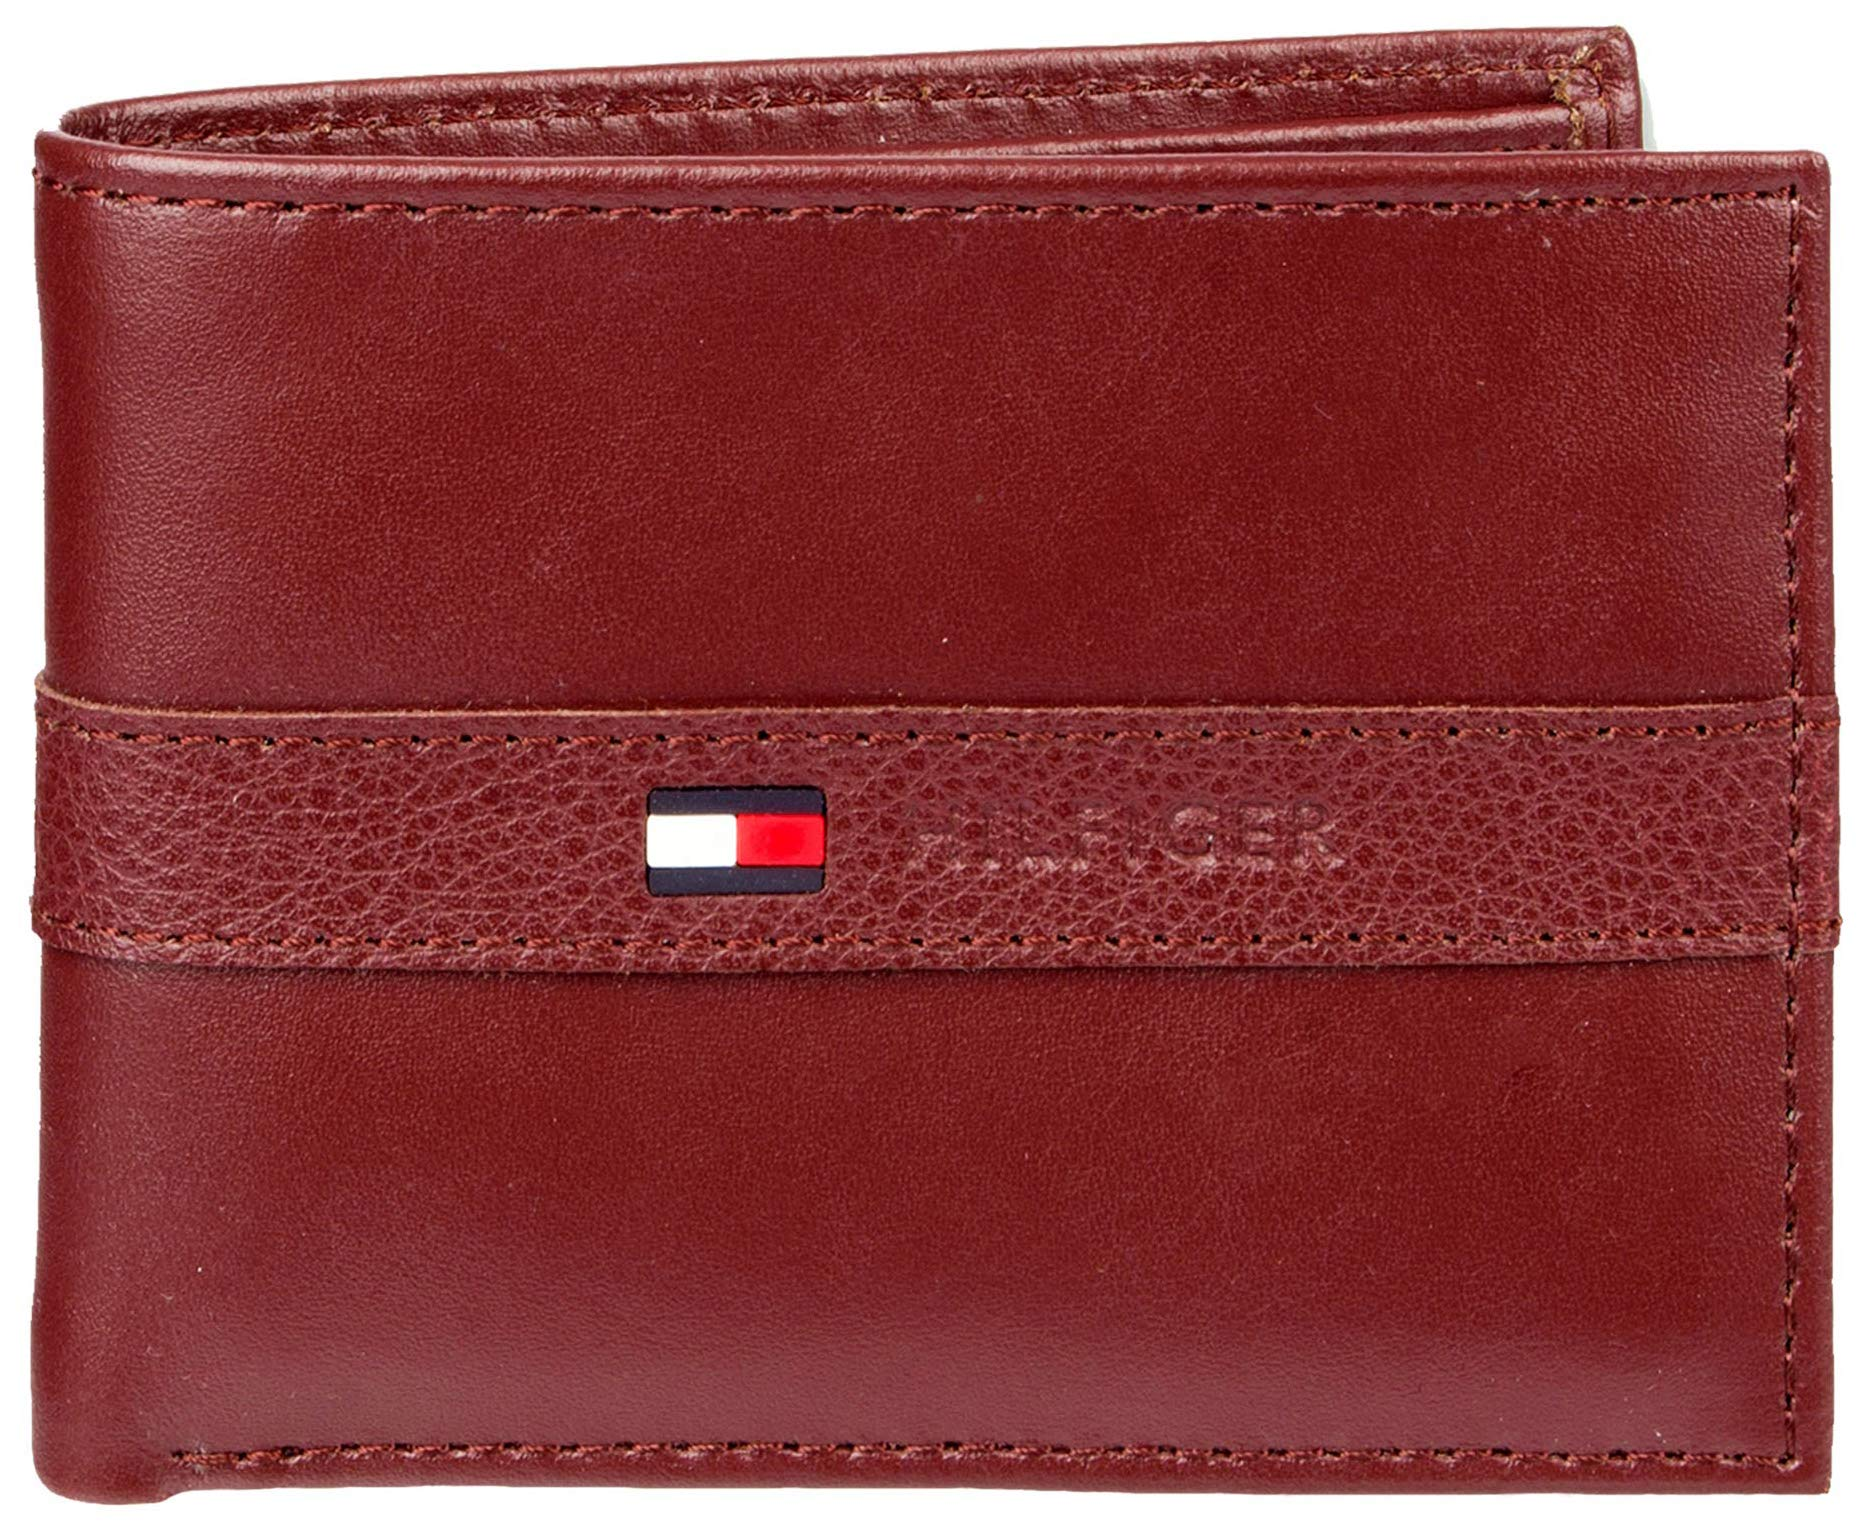 Tommy Hilfiger Men's Leather Wallet - Thin Sleek Casual Bifold with 6 Credit Card Pockets and Removable ID Window, Burgundy by Tommy Hilfiger